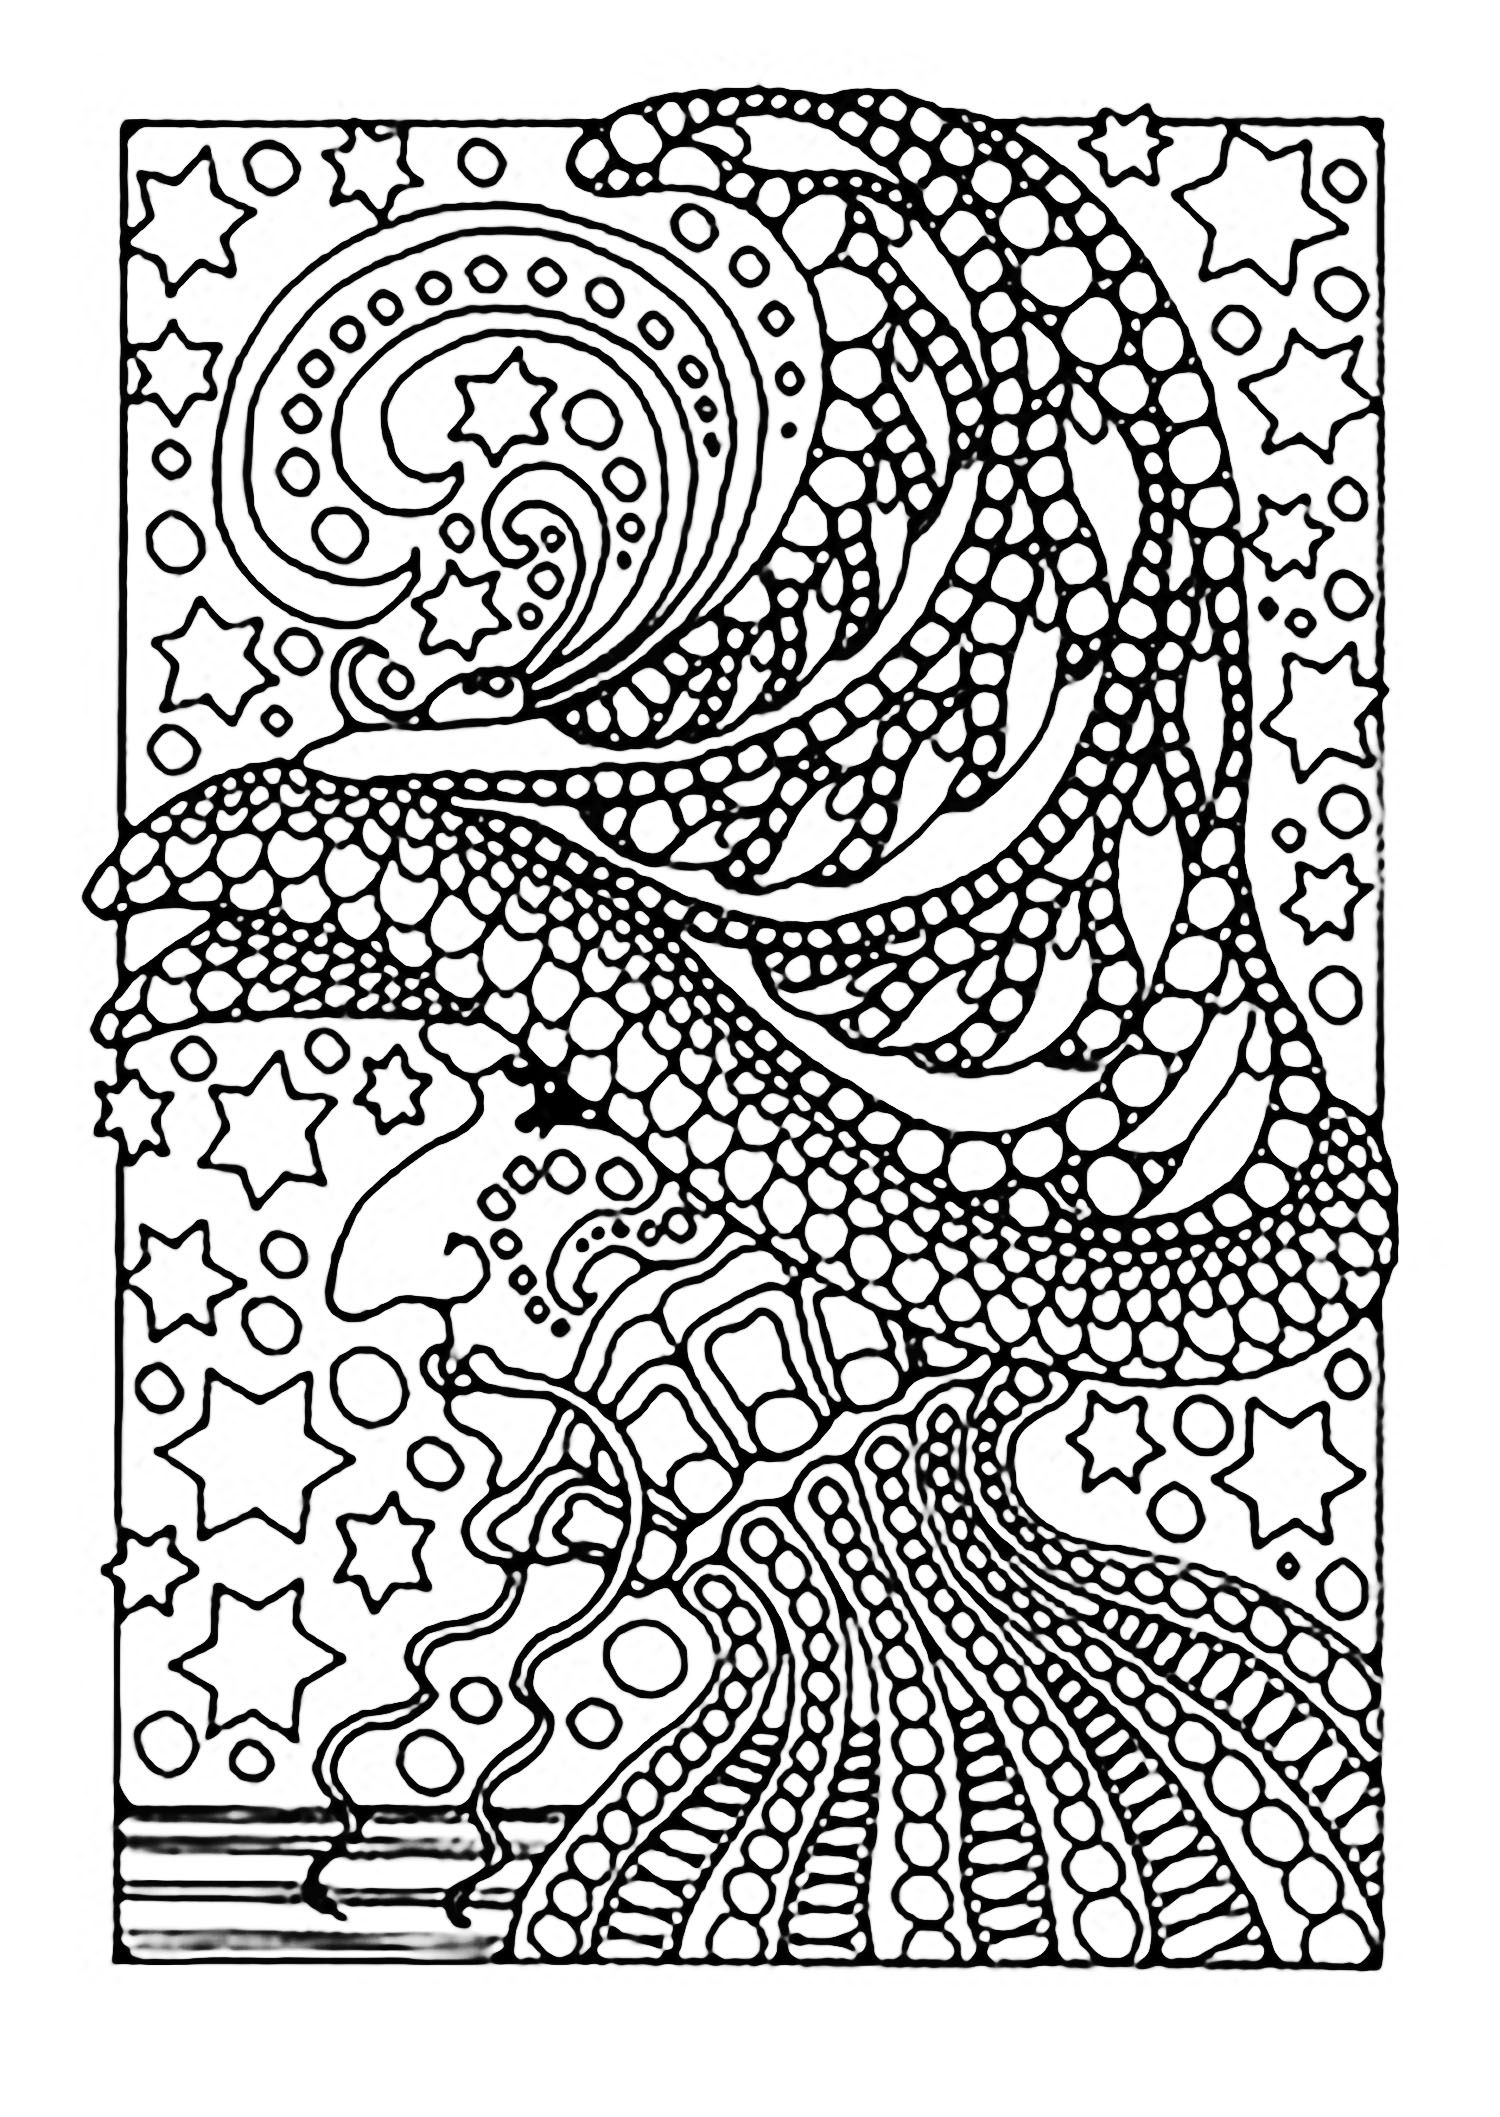 free printable paisley coloring pages abstract paisley coloring page free printable coloring pages free pages printable coloring paisley